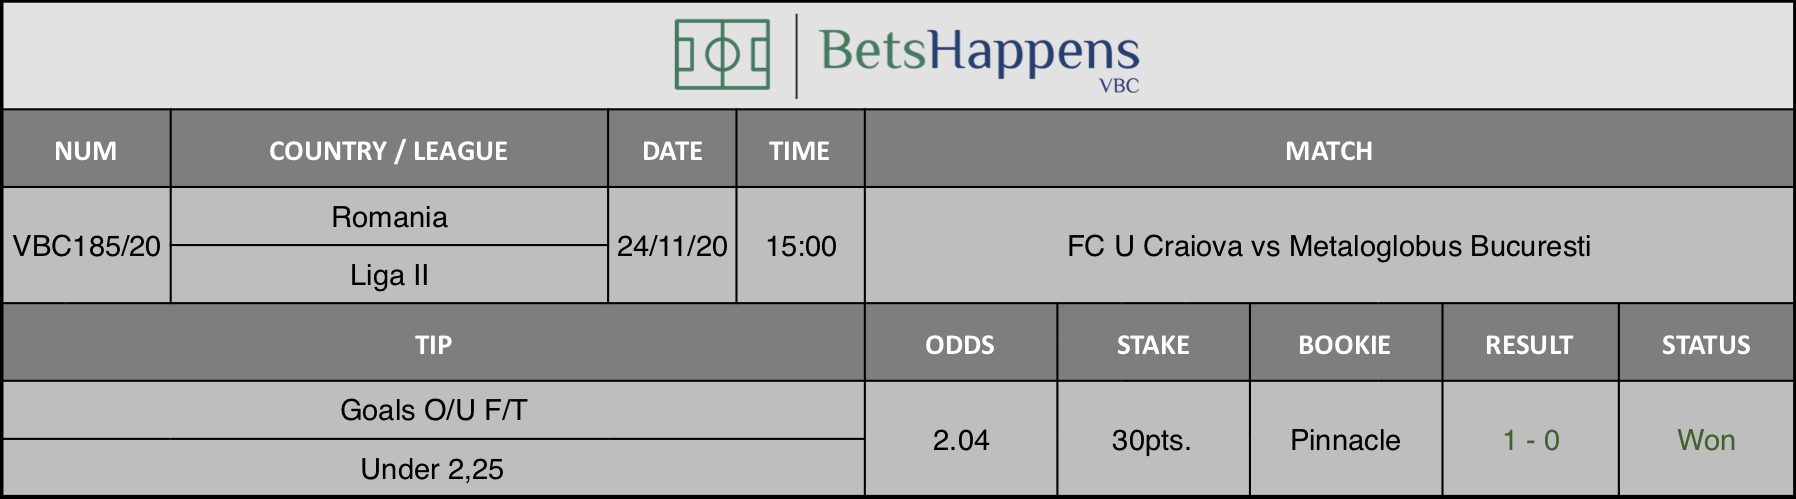 Results of our tip for the FC U Craiova vs Metaloglobus Bucuresti match where Goals O/U F/T Under 2,25 is recommended.